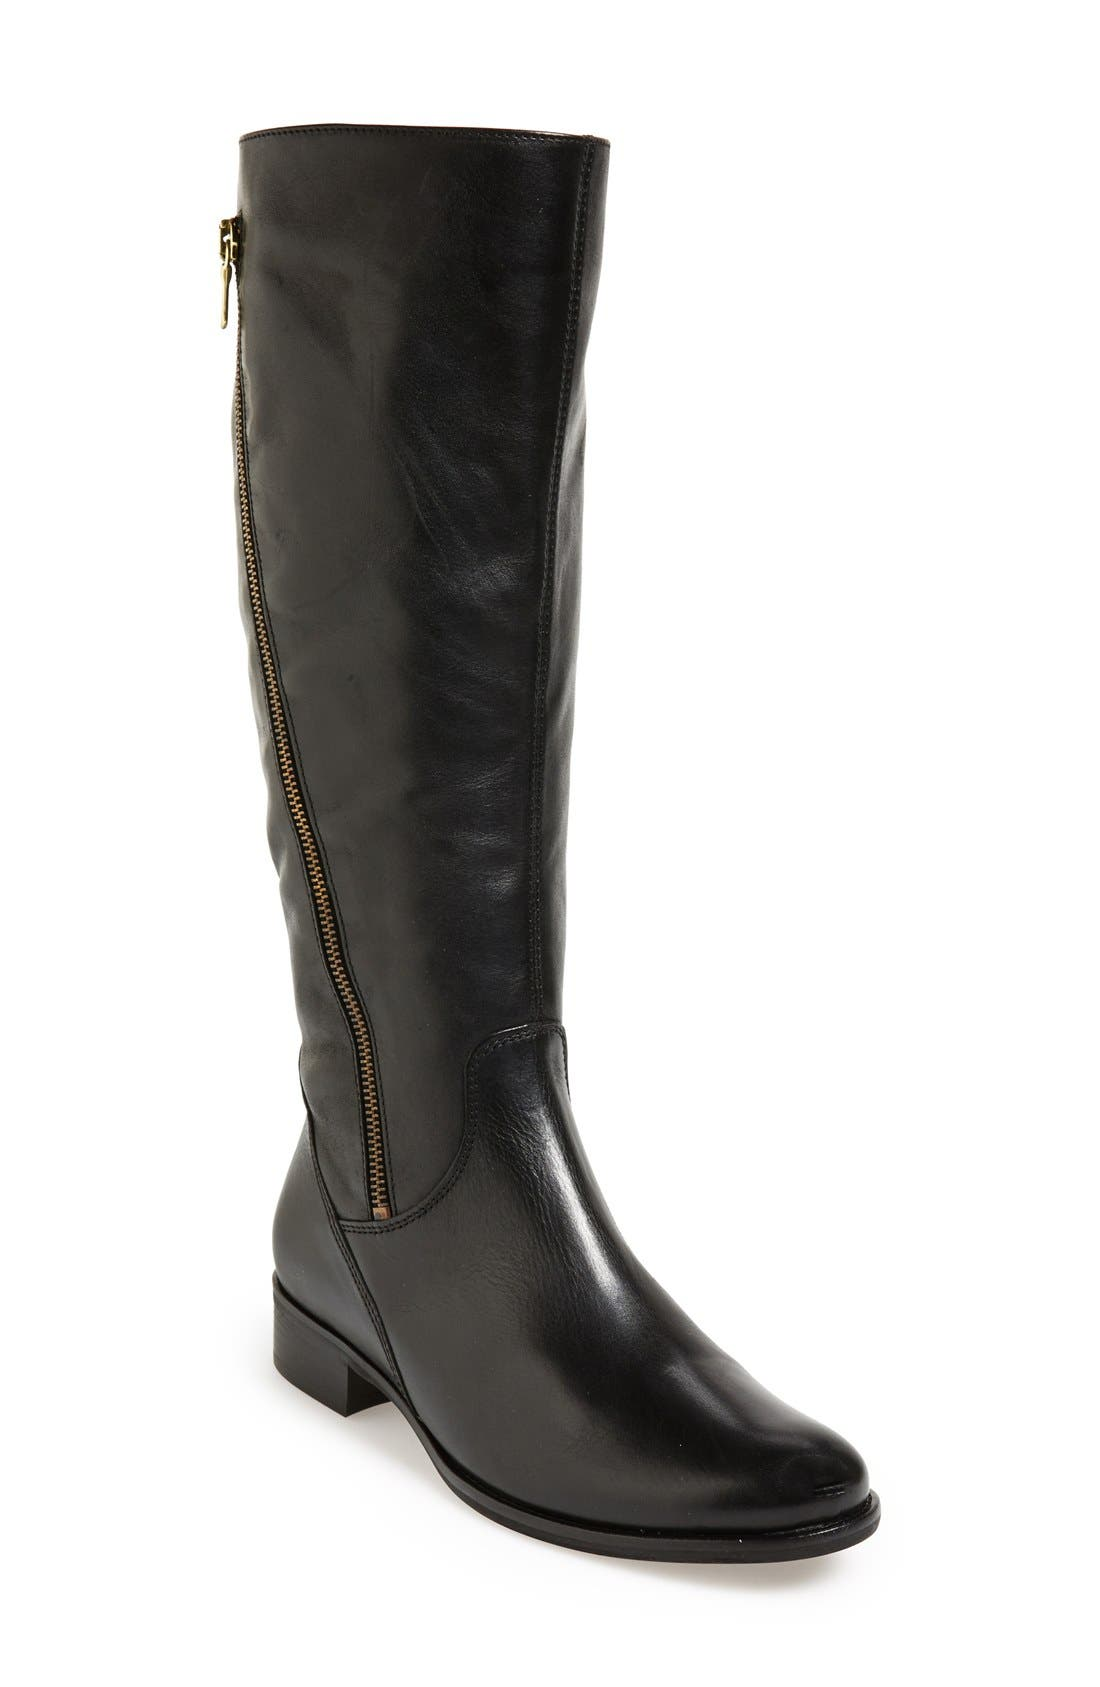 Alternate Image 1 Selected - Gabor 'Gold' Leather Riding Boot (Women)